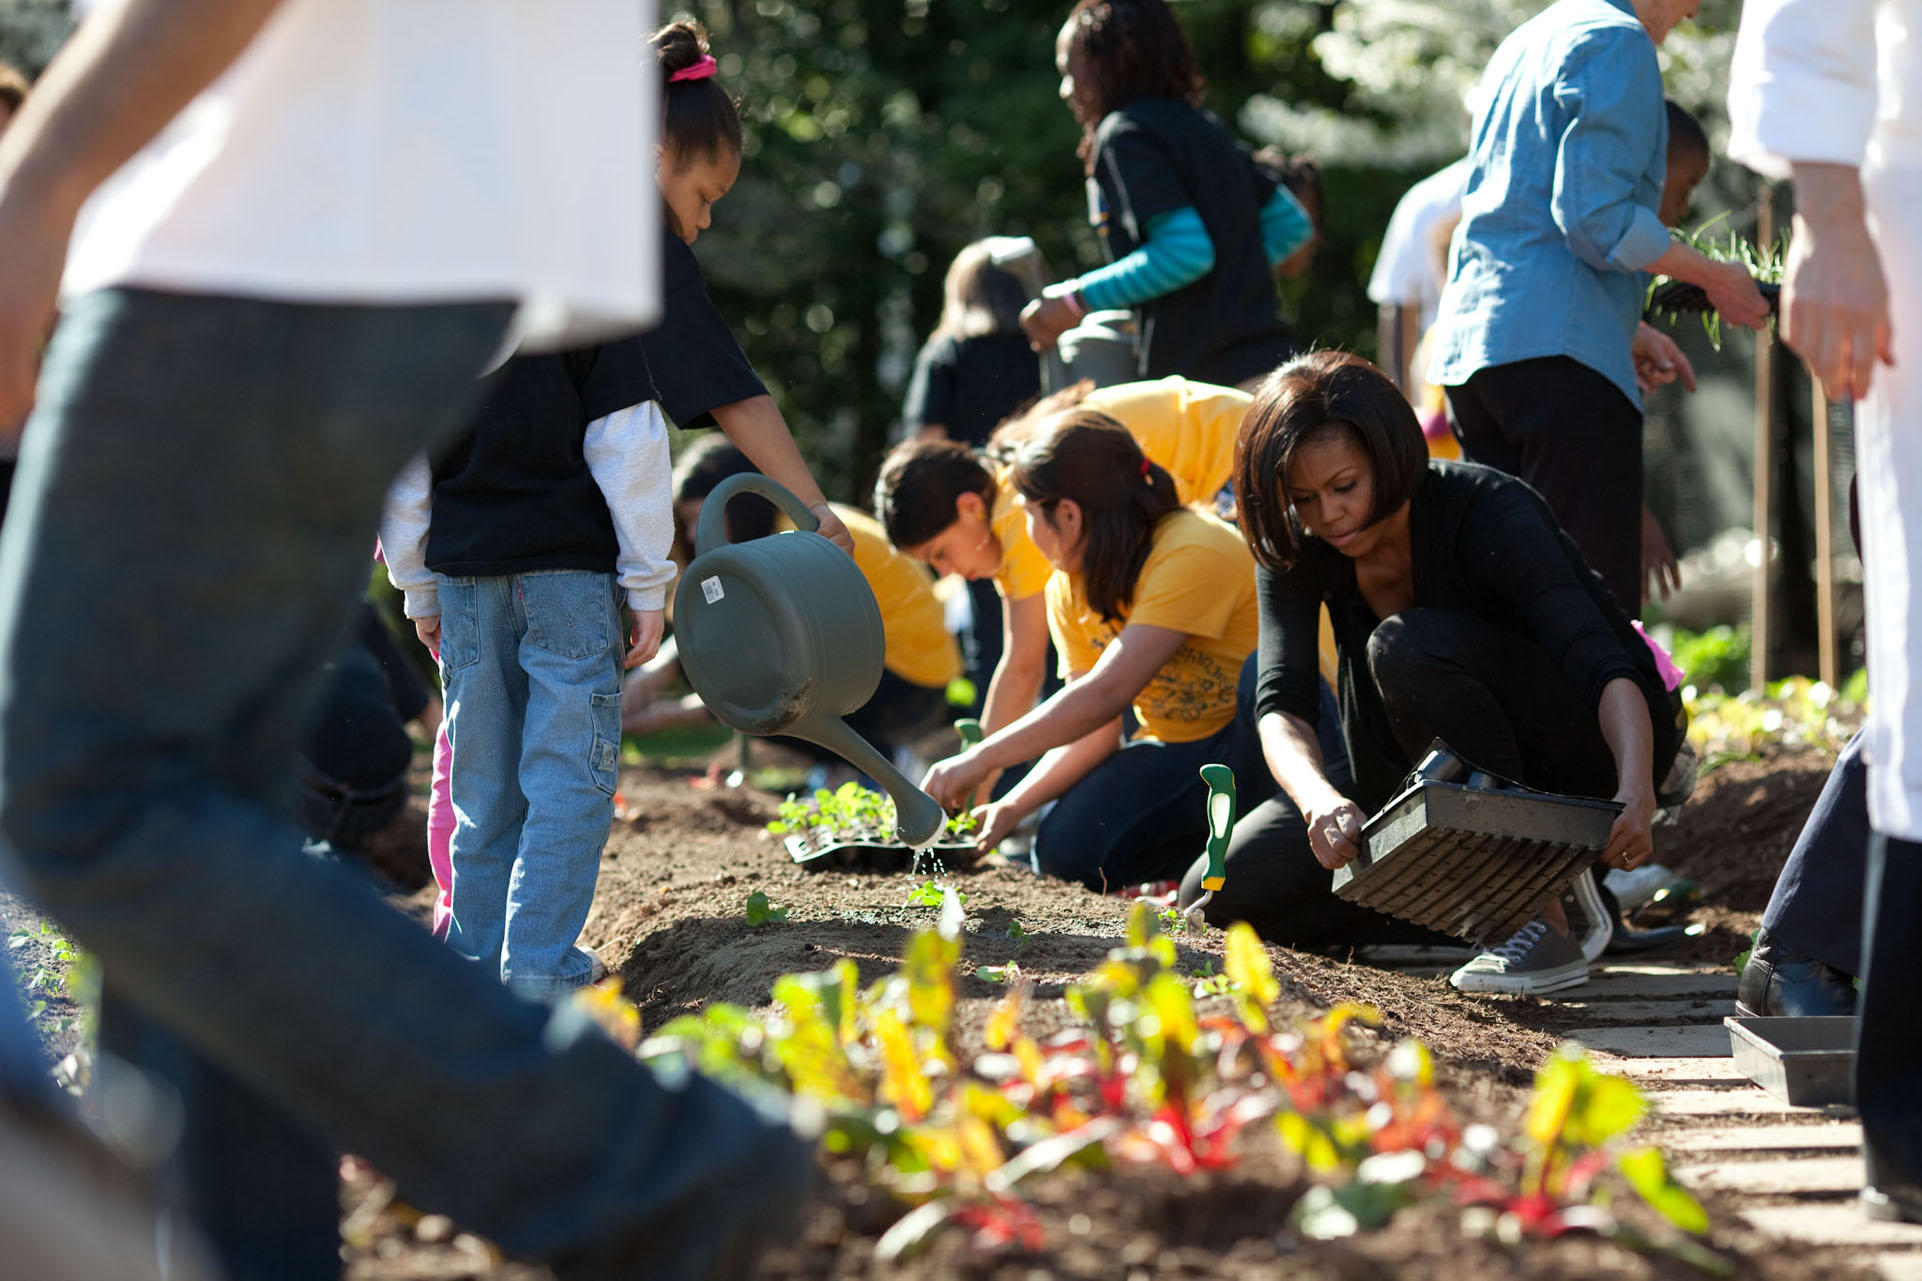 First Lady Michelle Obama participates in the Spring Garden Planting Event on the South Lawn of the White House March 31, 2010. (Official White House Photo by Lawrence Jackson) This official White House photograph is being made available only for publication by news organizations and/or for personal use printing by the subject(s) of the photograph. The photograph may not be manipulated in any way and may not be used in commercial or political materials, advertisements, emails, products, promotions that in any way suggests approval or endorsement of the President, the First Family, or the White House.